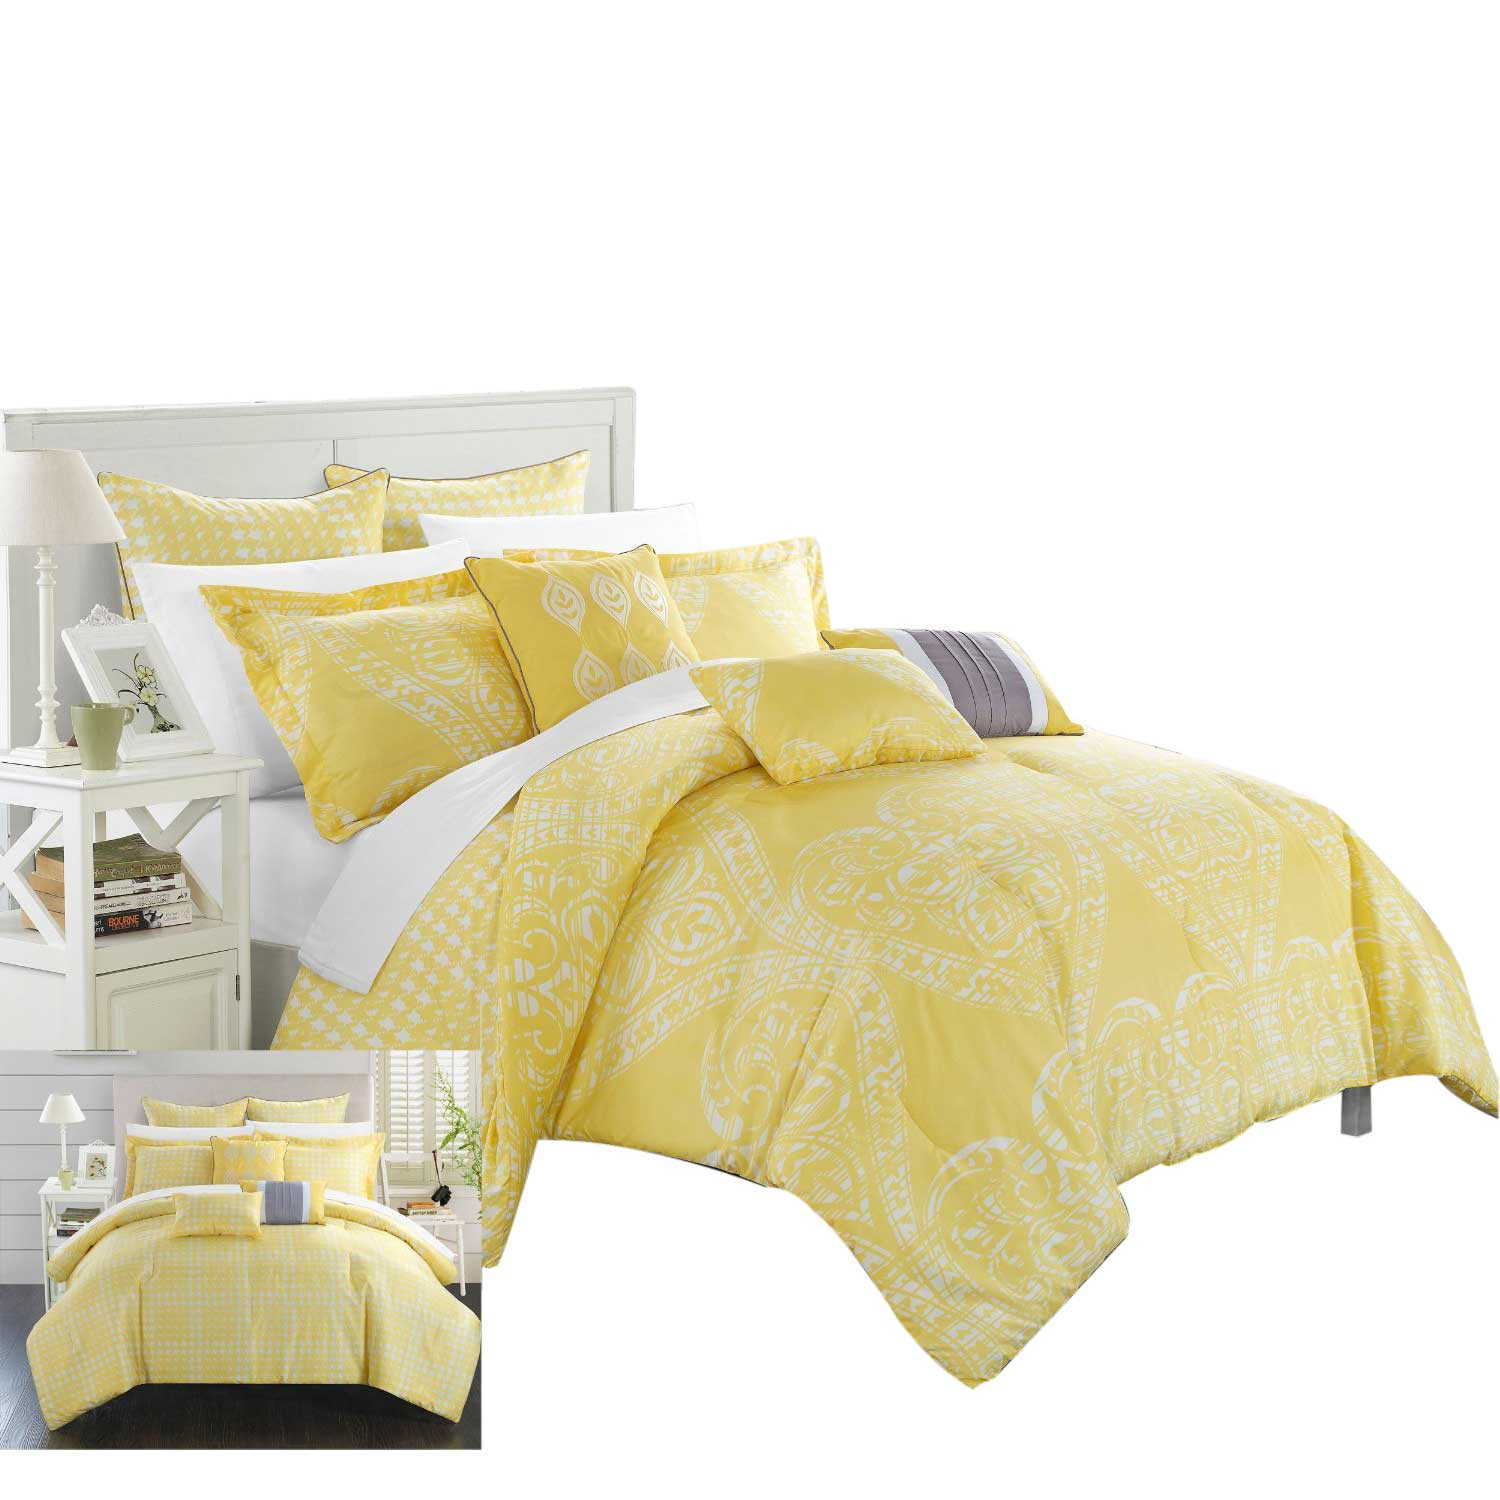 Parma Sicily Reversible Printed Comforter Set King, Queen & Twin Yellow